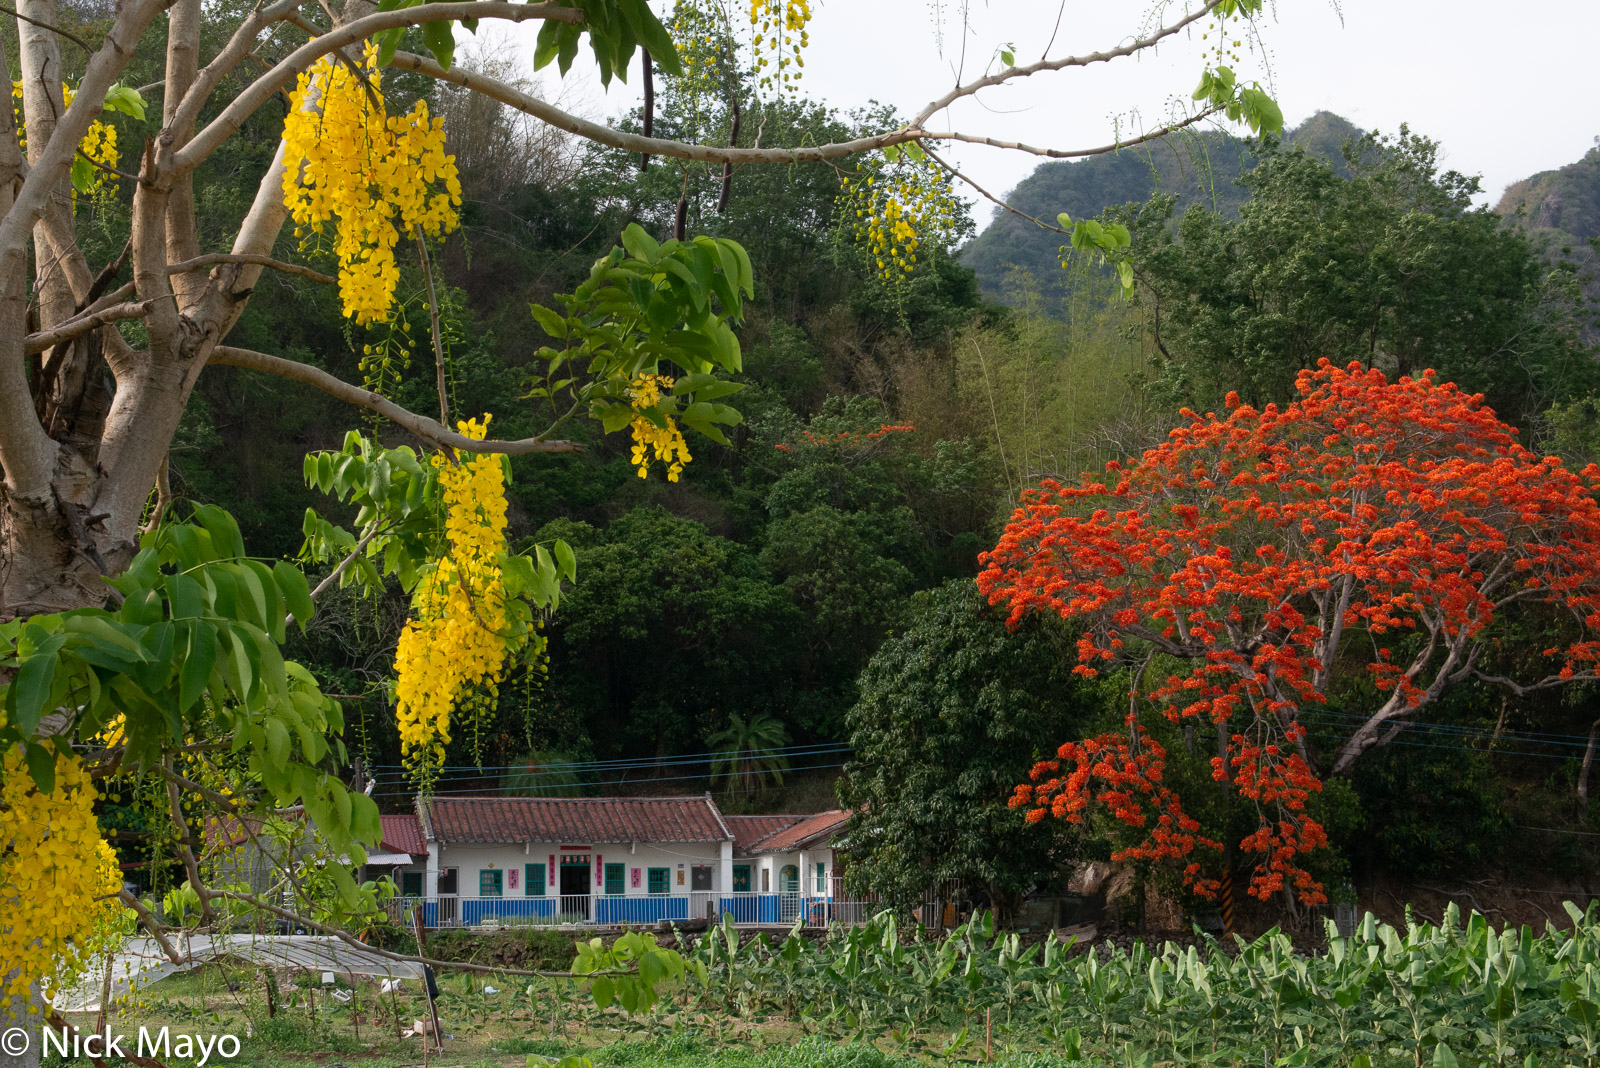 Flowering royal poinciana and Indian laburnum trees around a farmhouse in Meinong district.